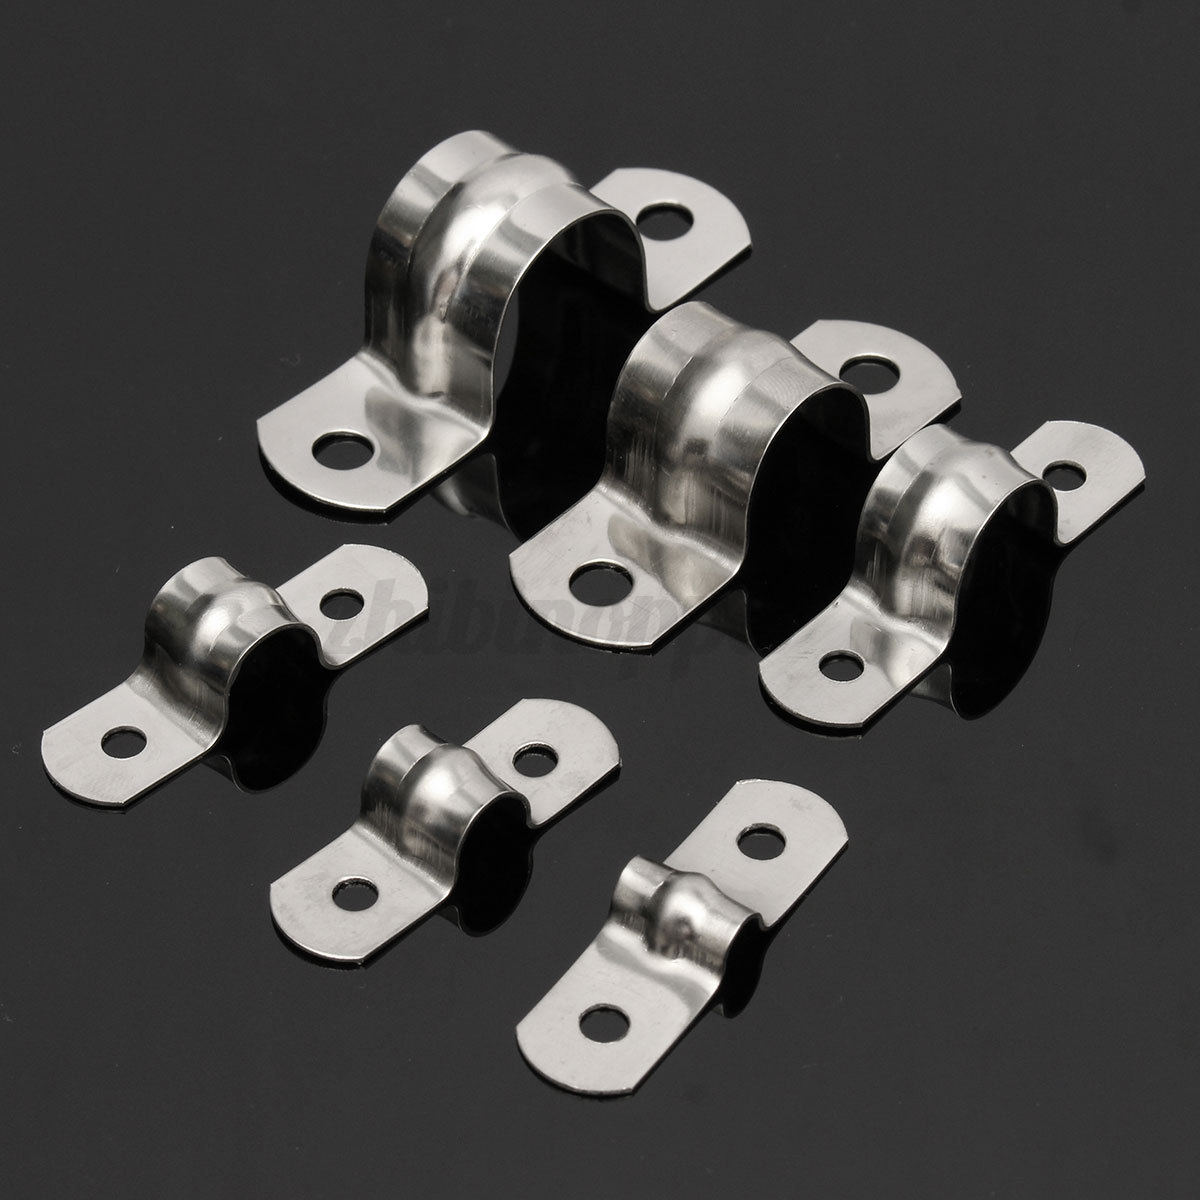 Steel Pipe Clips : Stainless steel plumbing tube saddle pipe clip